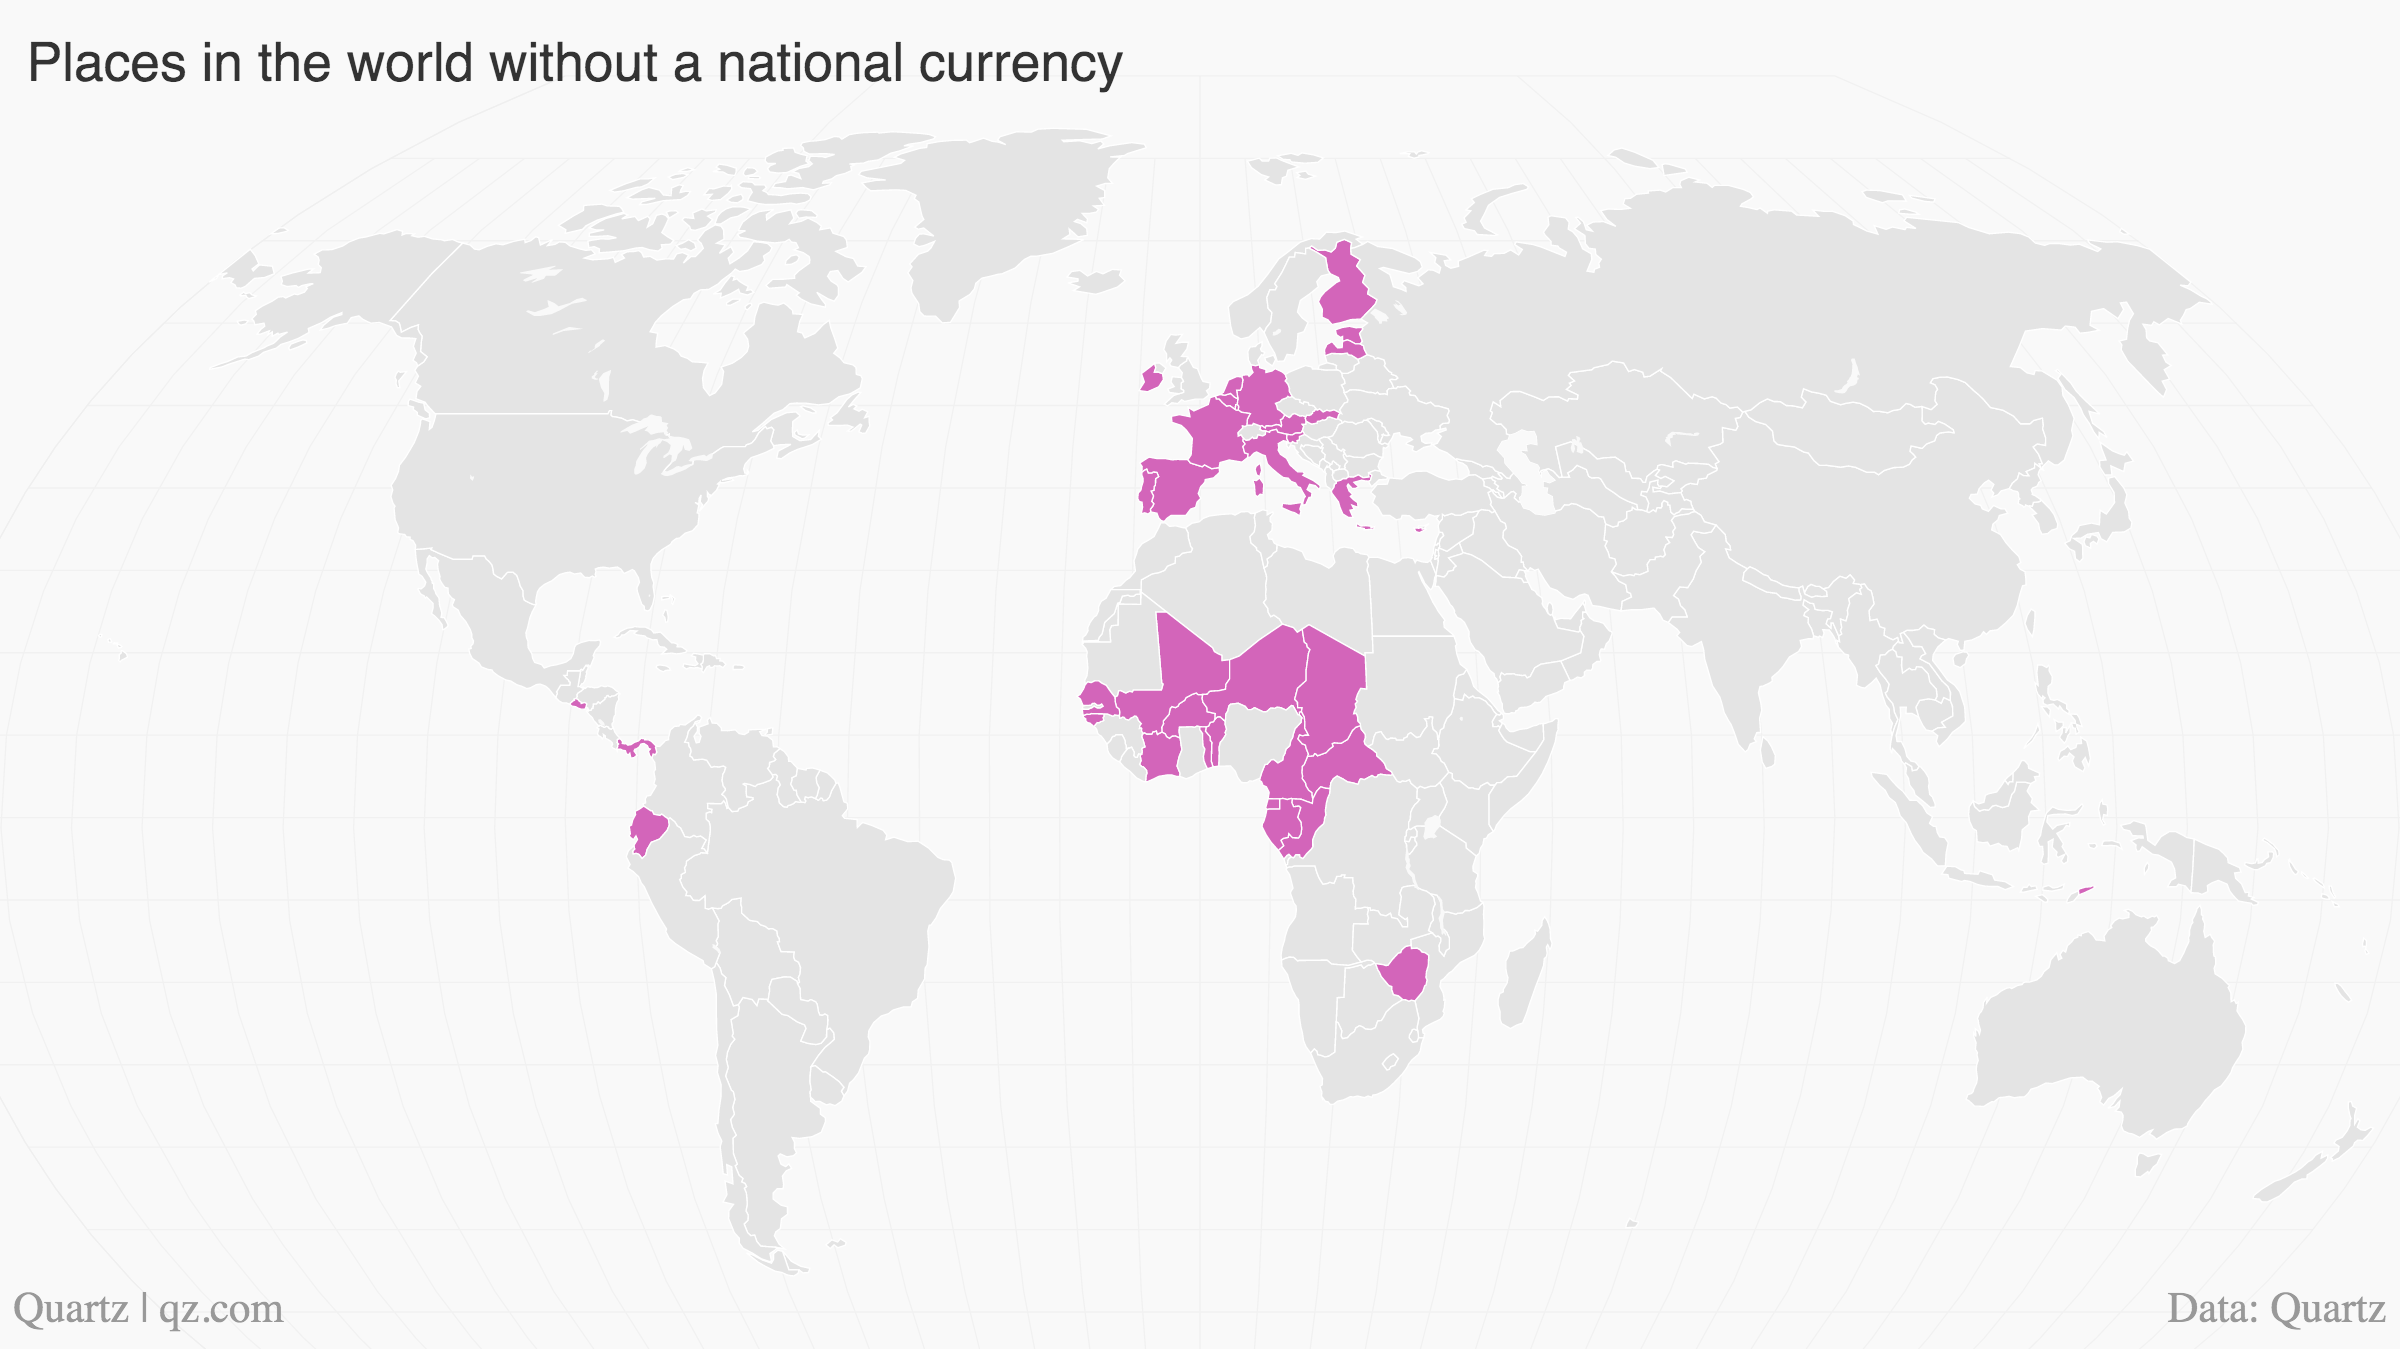 Here are all the countries that don't have a currency of